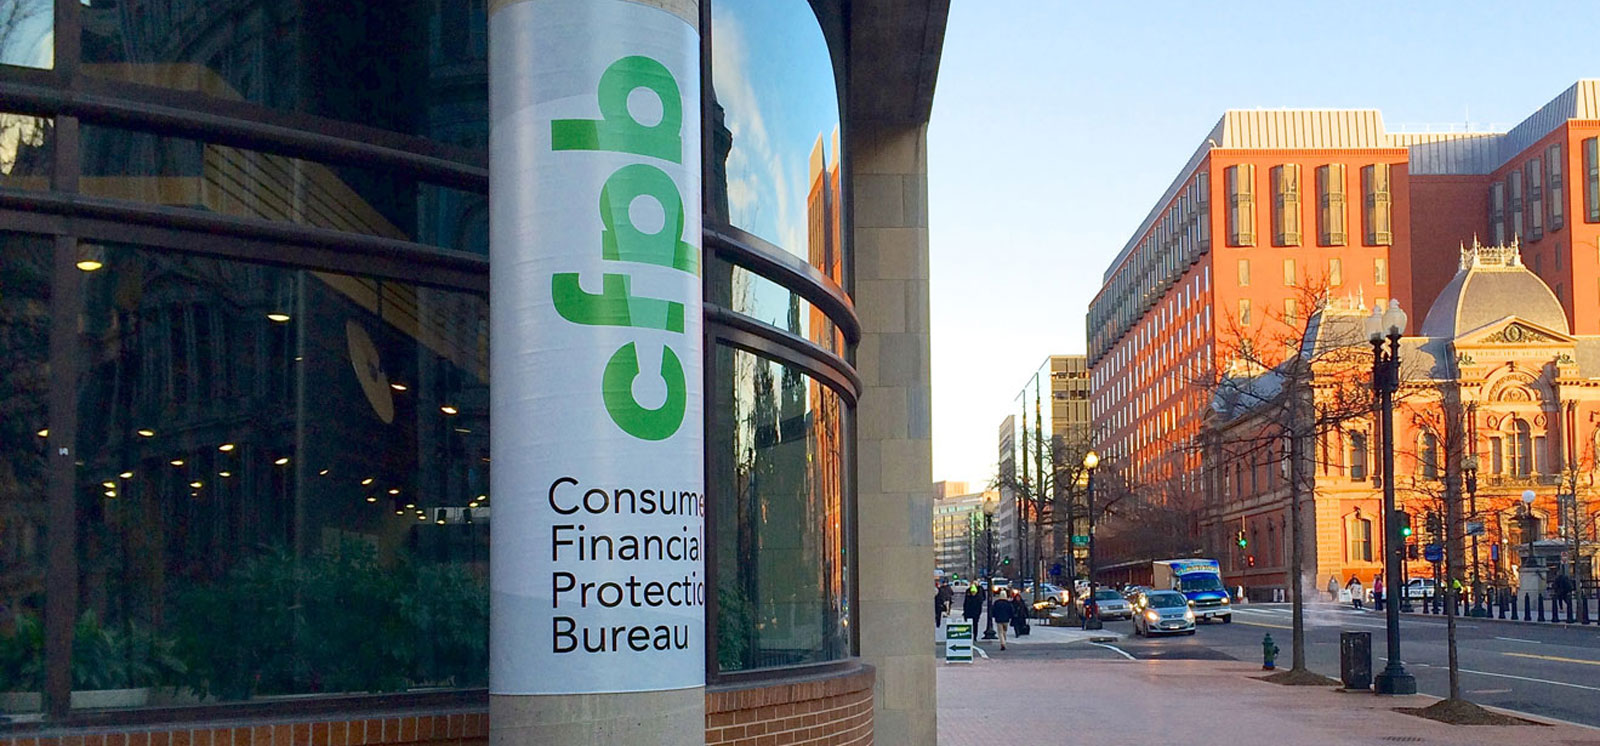 "<h4>CONSUMER PROTECTION</h4><p>We're working to get dangerous products off store shelves, to end exploitative practices, to protect private data and to ensure a level playing field in the marketplace. And we're urging Congress and federal agencies to establish new rules, institutions and policies to defend consumers from the economic and political power of special interests.</p><div><a class=""slideshowButton"" href=""#consumerAnchor"">LEARN MORE</a></div><em>Ted Eytan via Flickr, CC-BY-SA 2.0</em>"